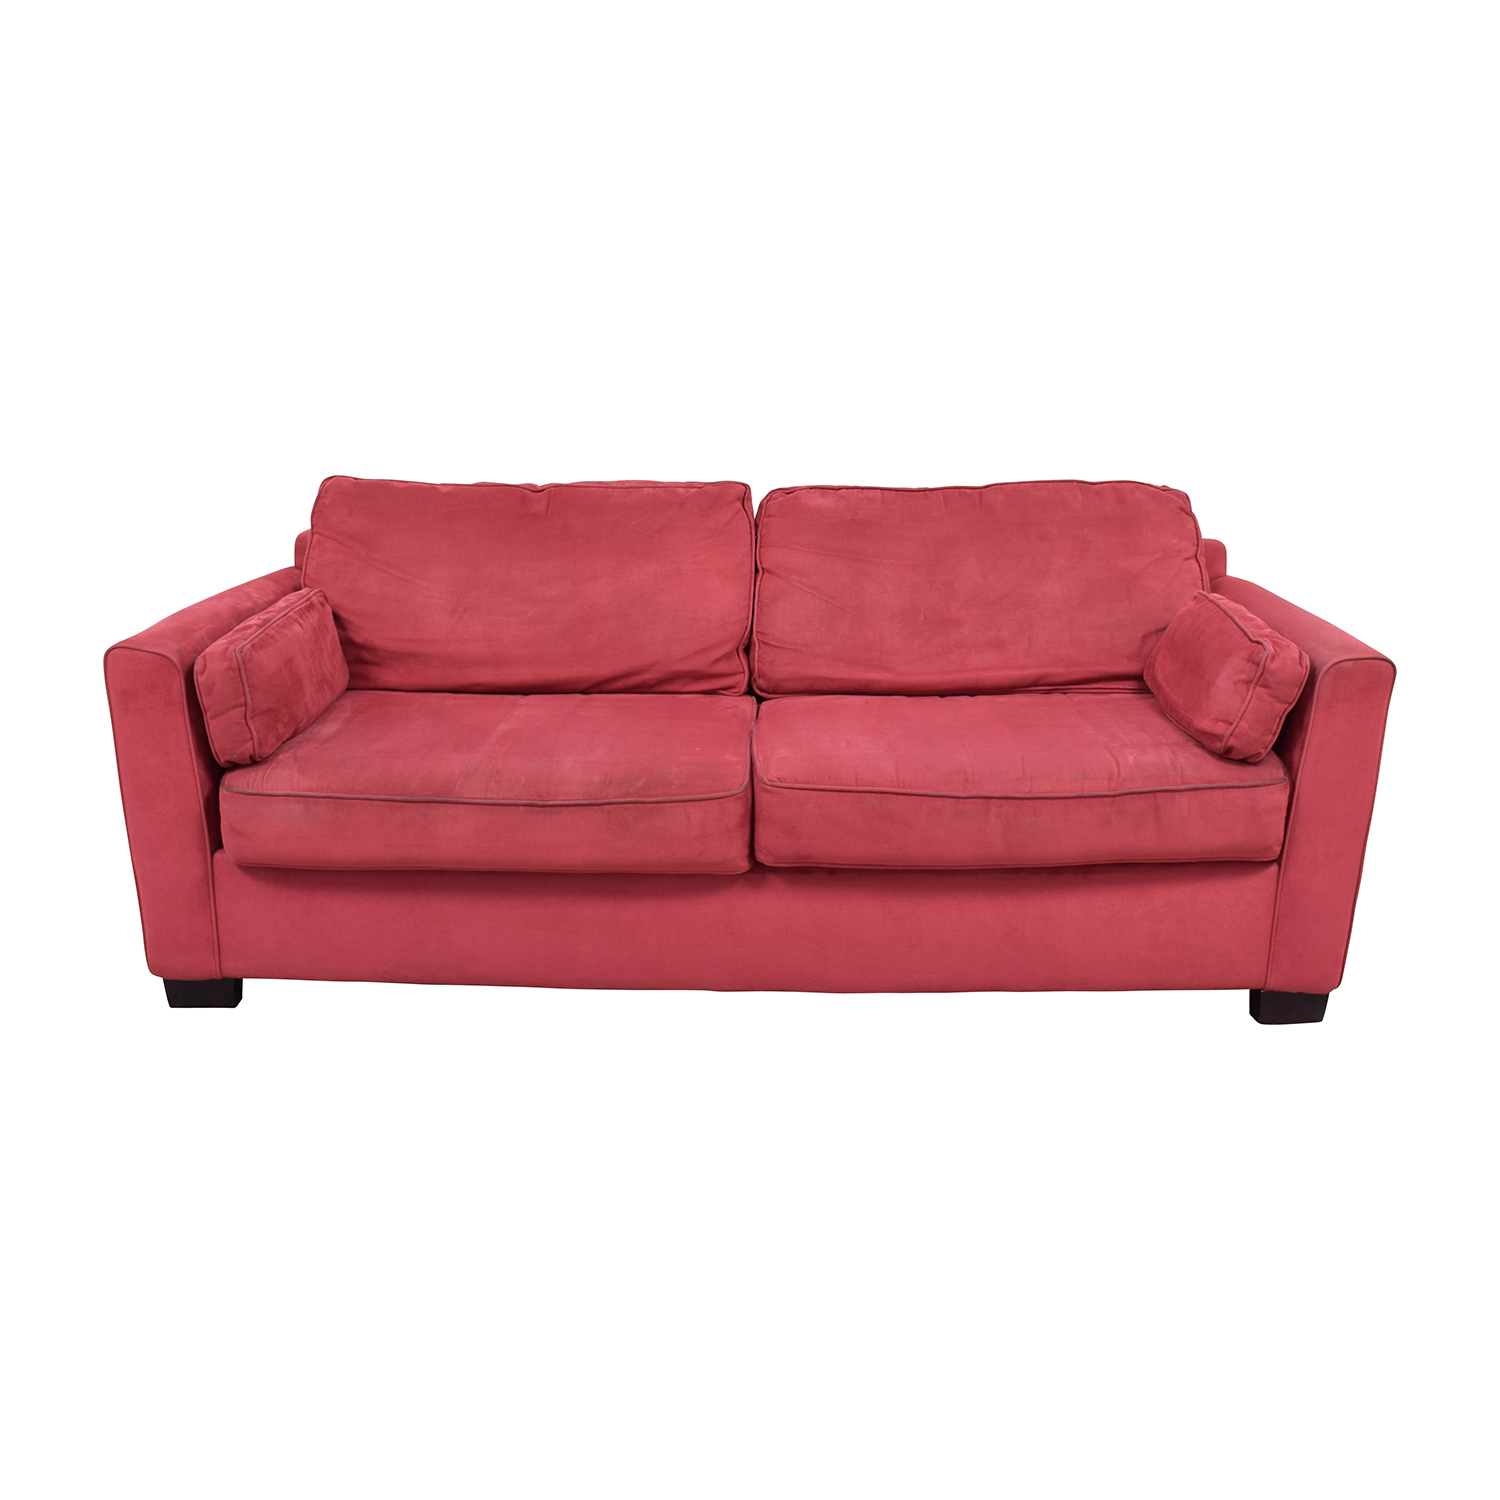 Bloomingdales Classic Low Profile Red Couch Bloomingdales ...